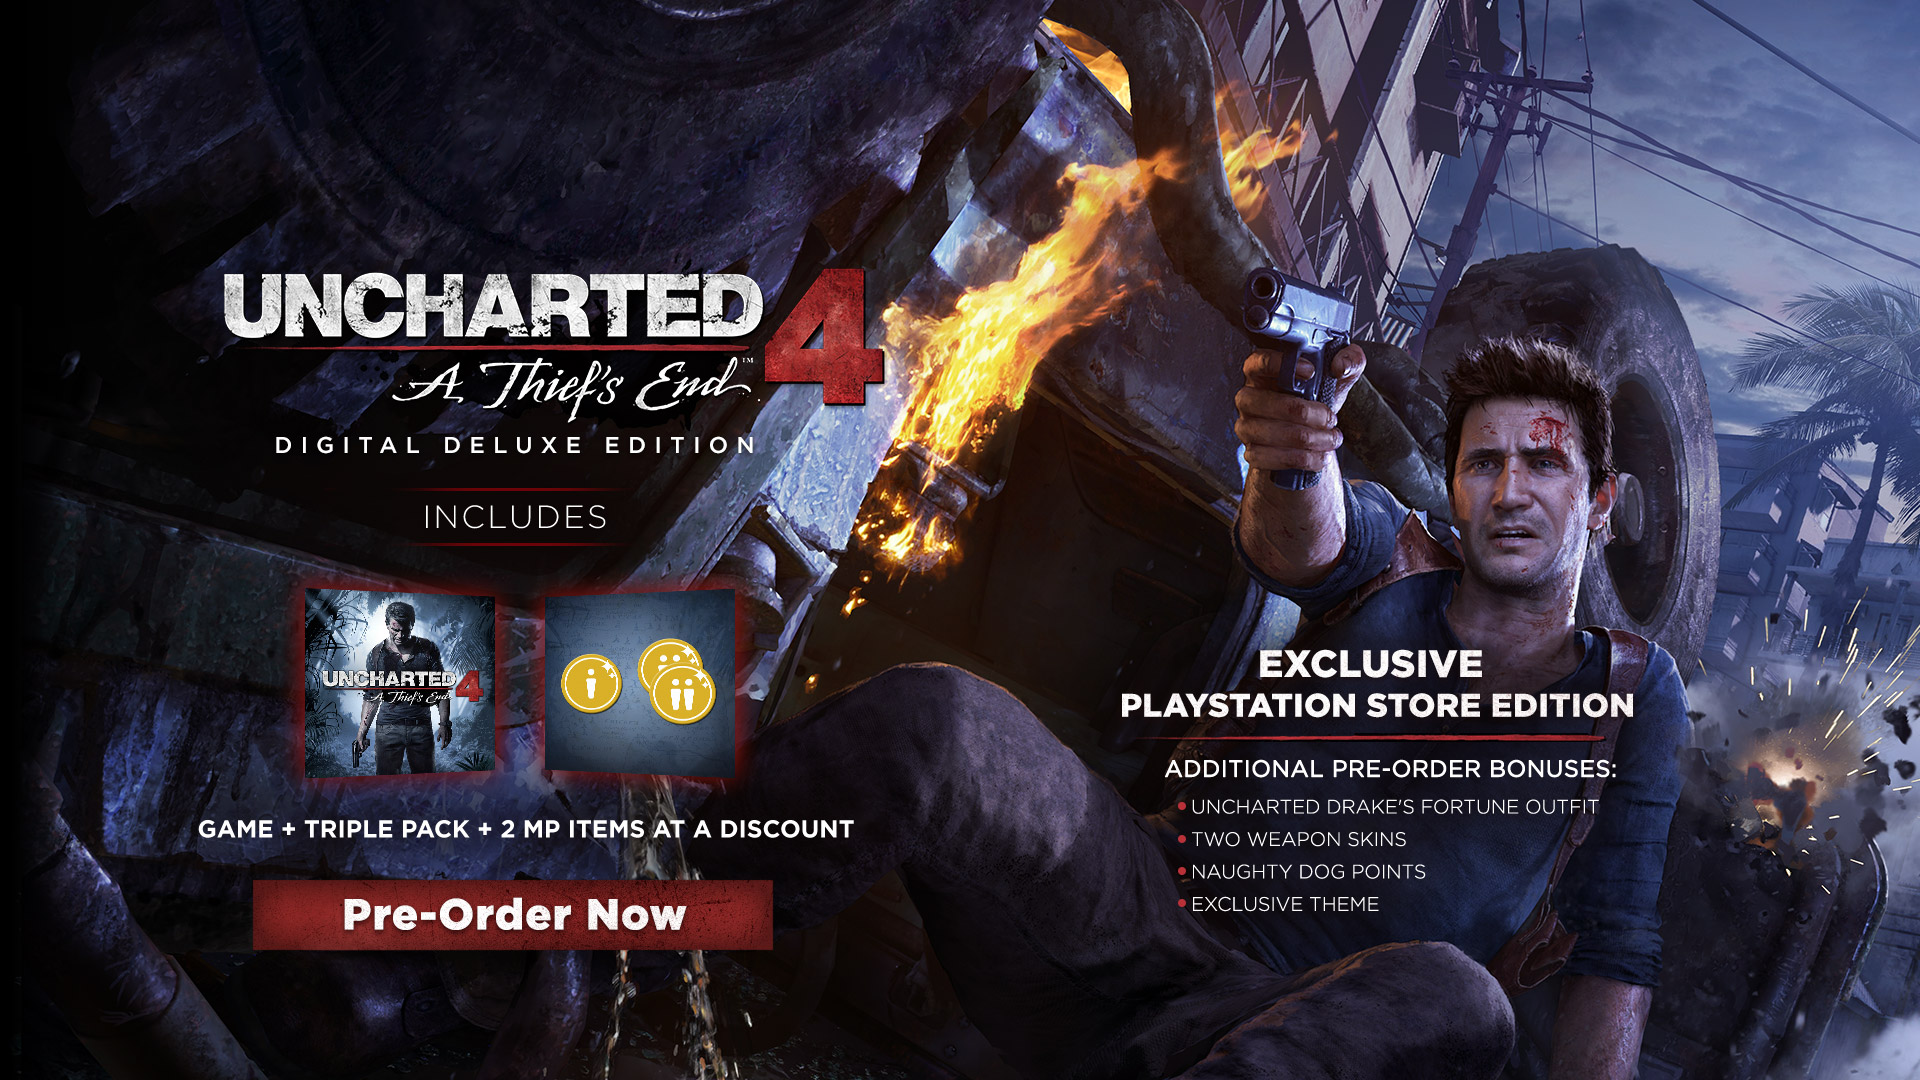 Uncharted 4 Digital Deluxe Edition